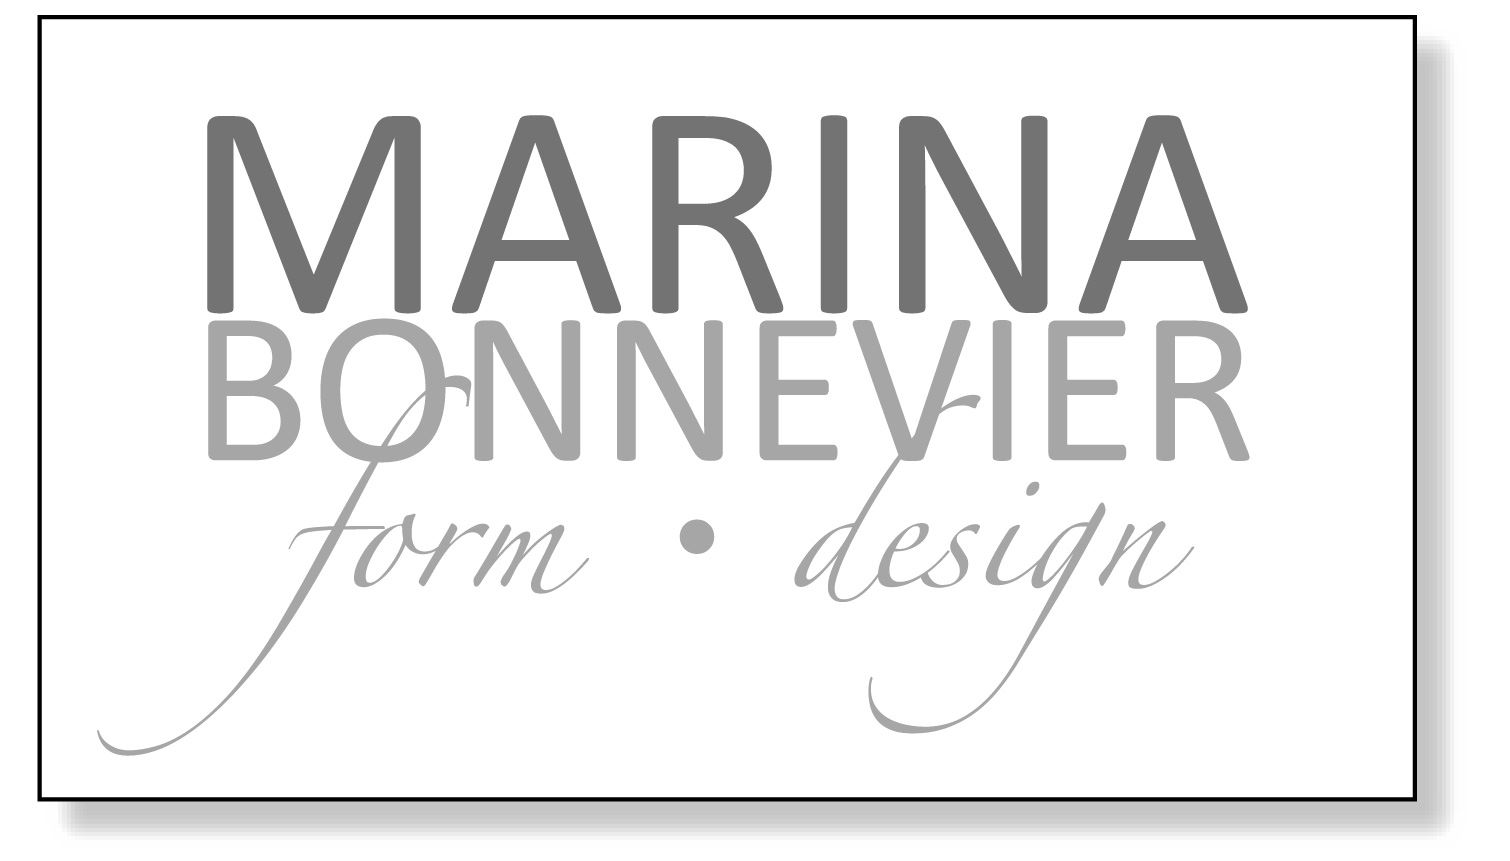 Marina Bonnevier Form/Design